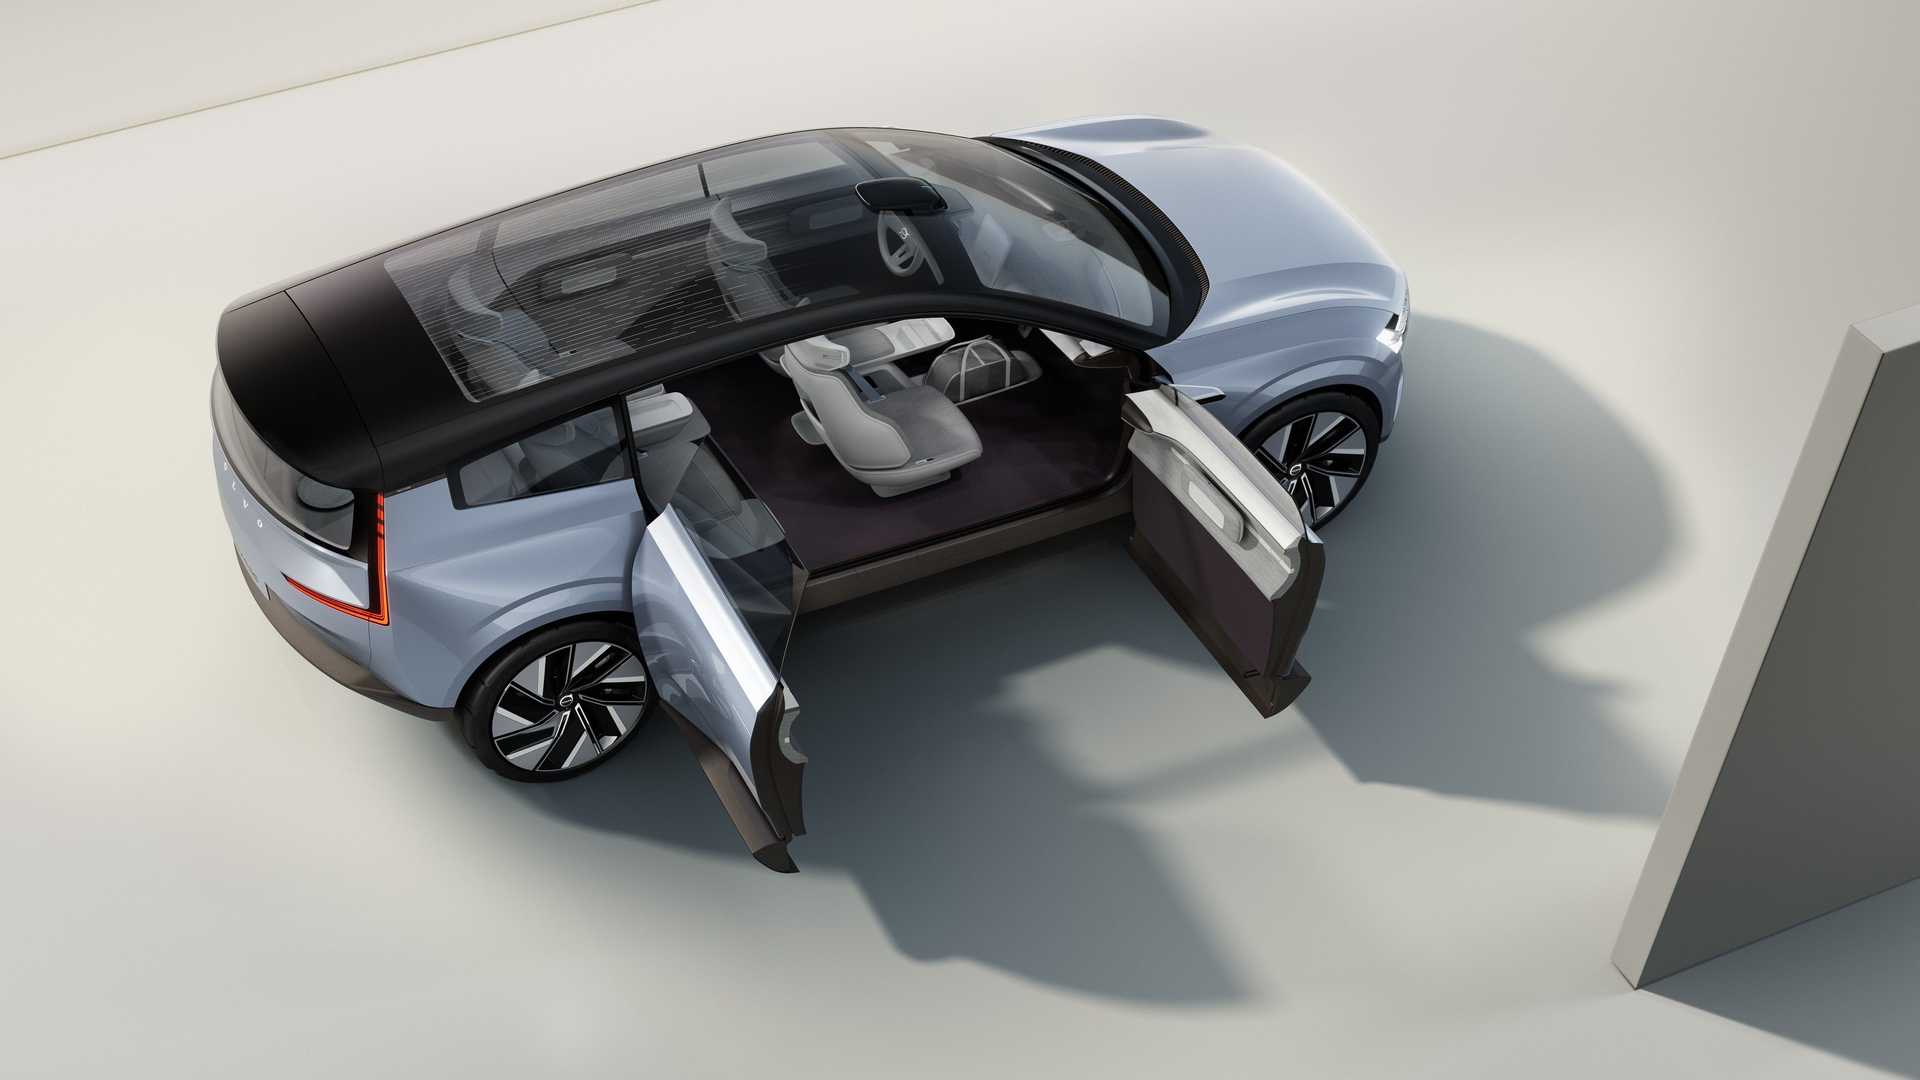 volvo-concept-recharge-top-view.jpeg